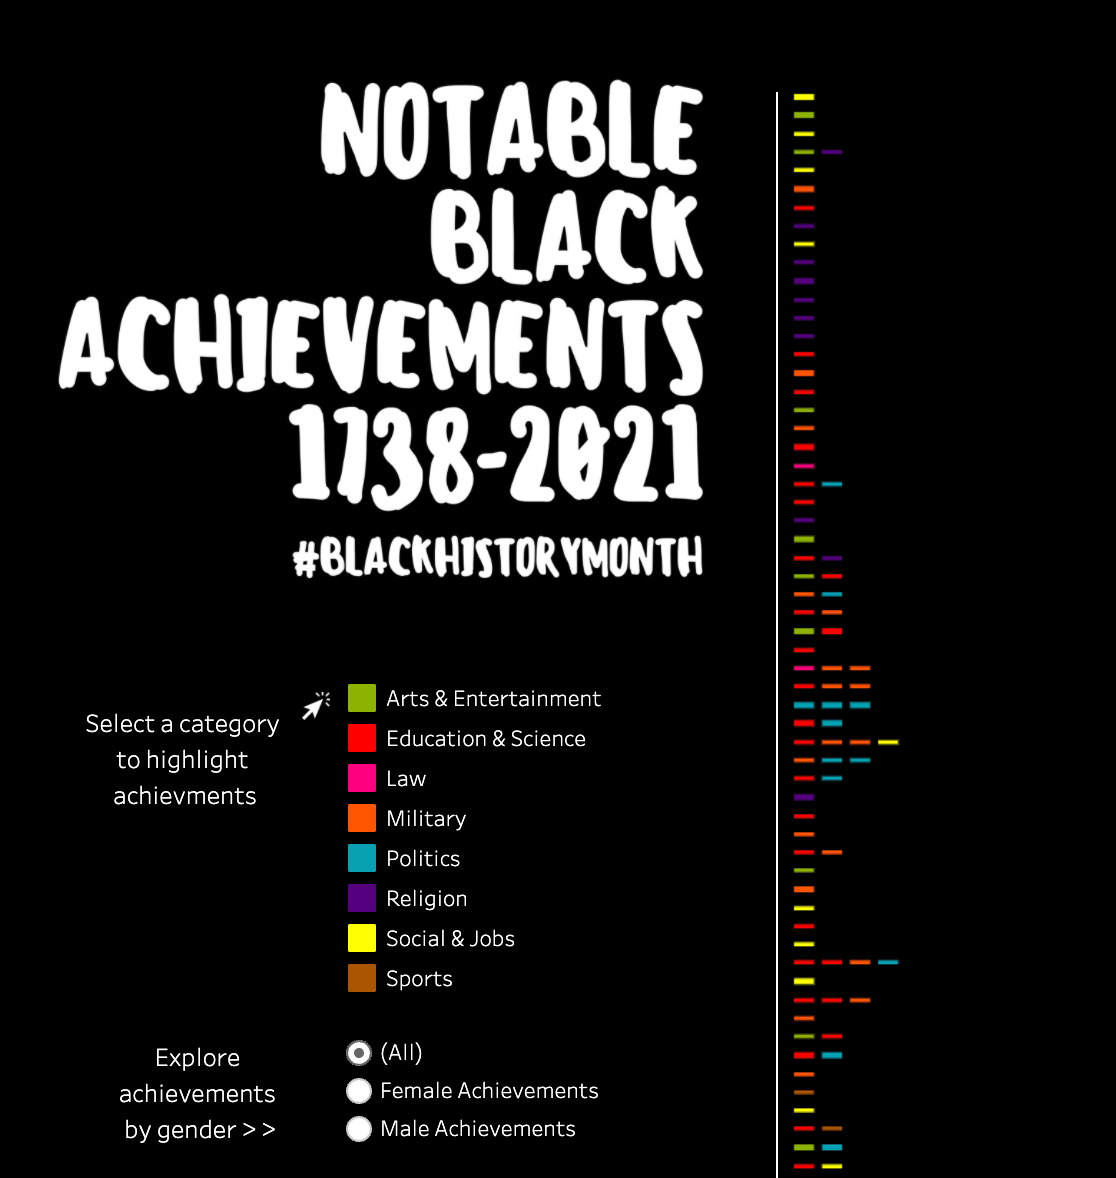 Notable Black Achievements Visualization